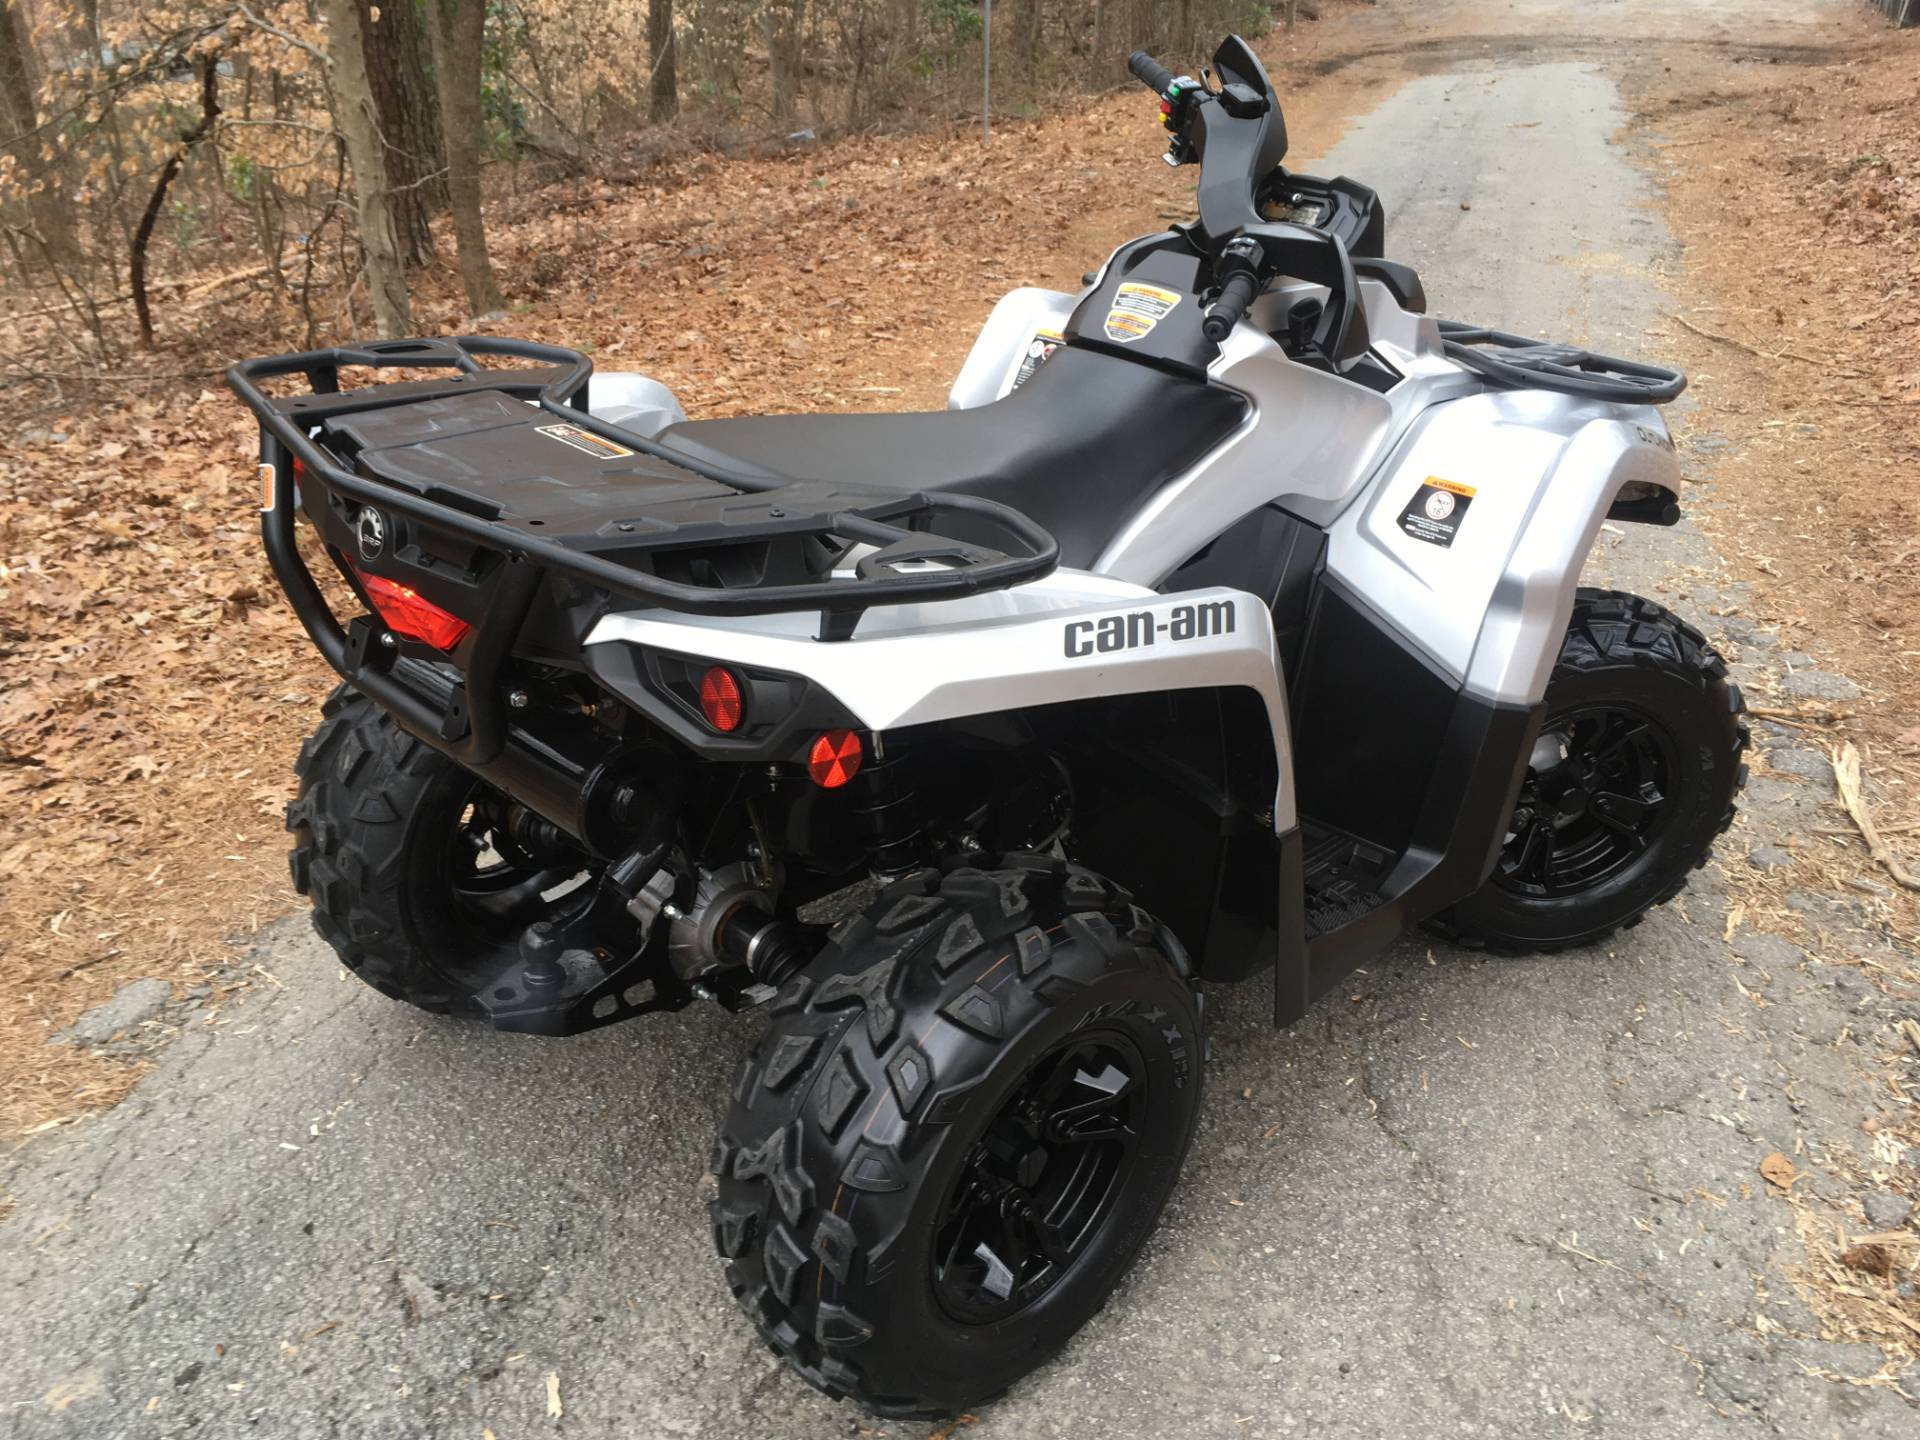 2019 CAN-AM OUTLANDER XT 570 in Woodstock, Georgia - Photo 4